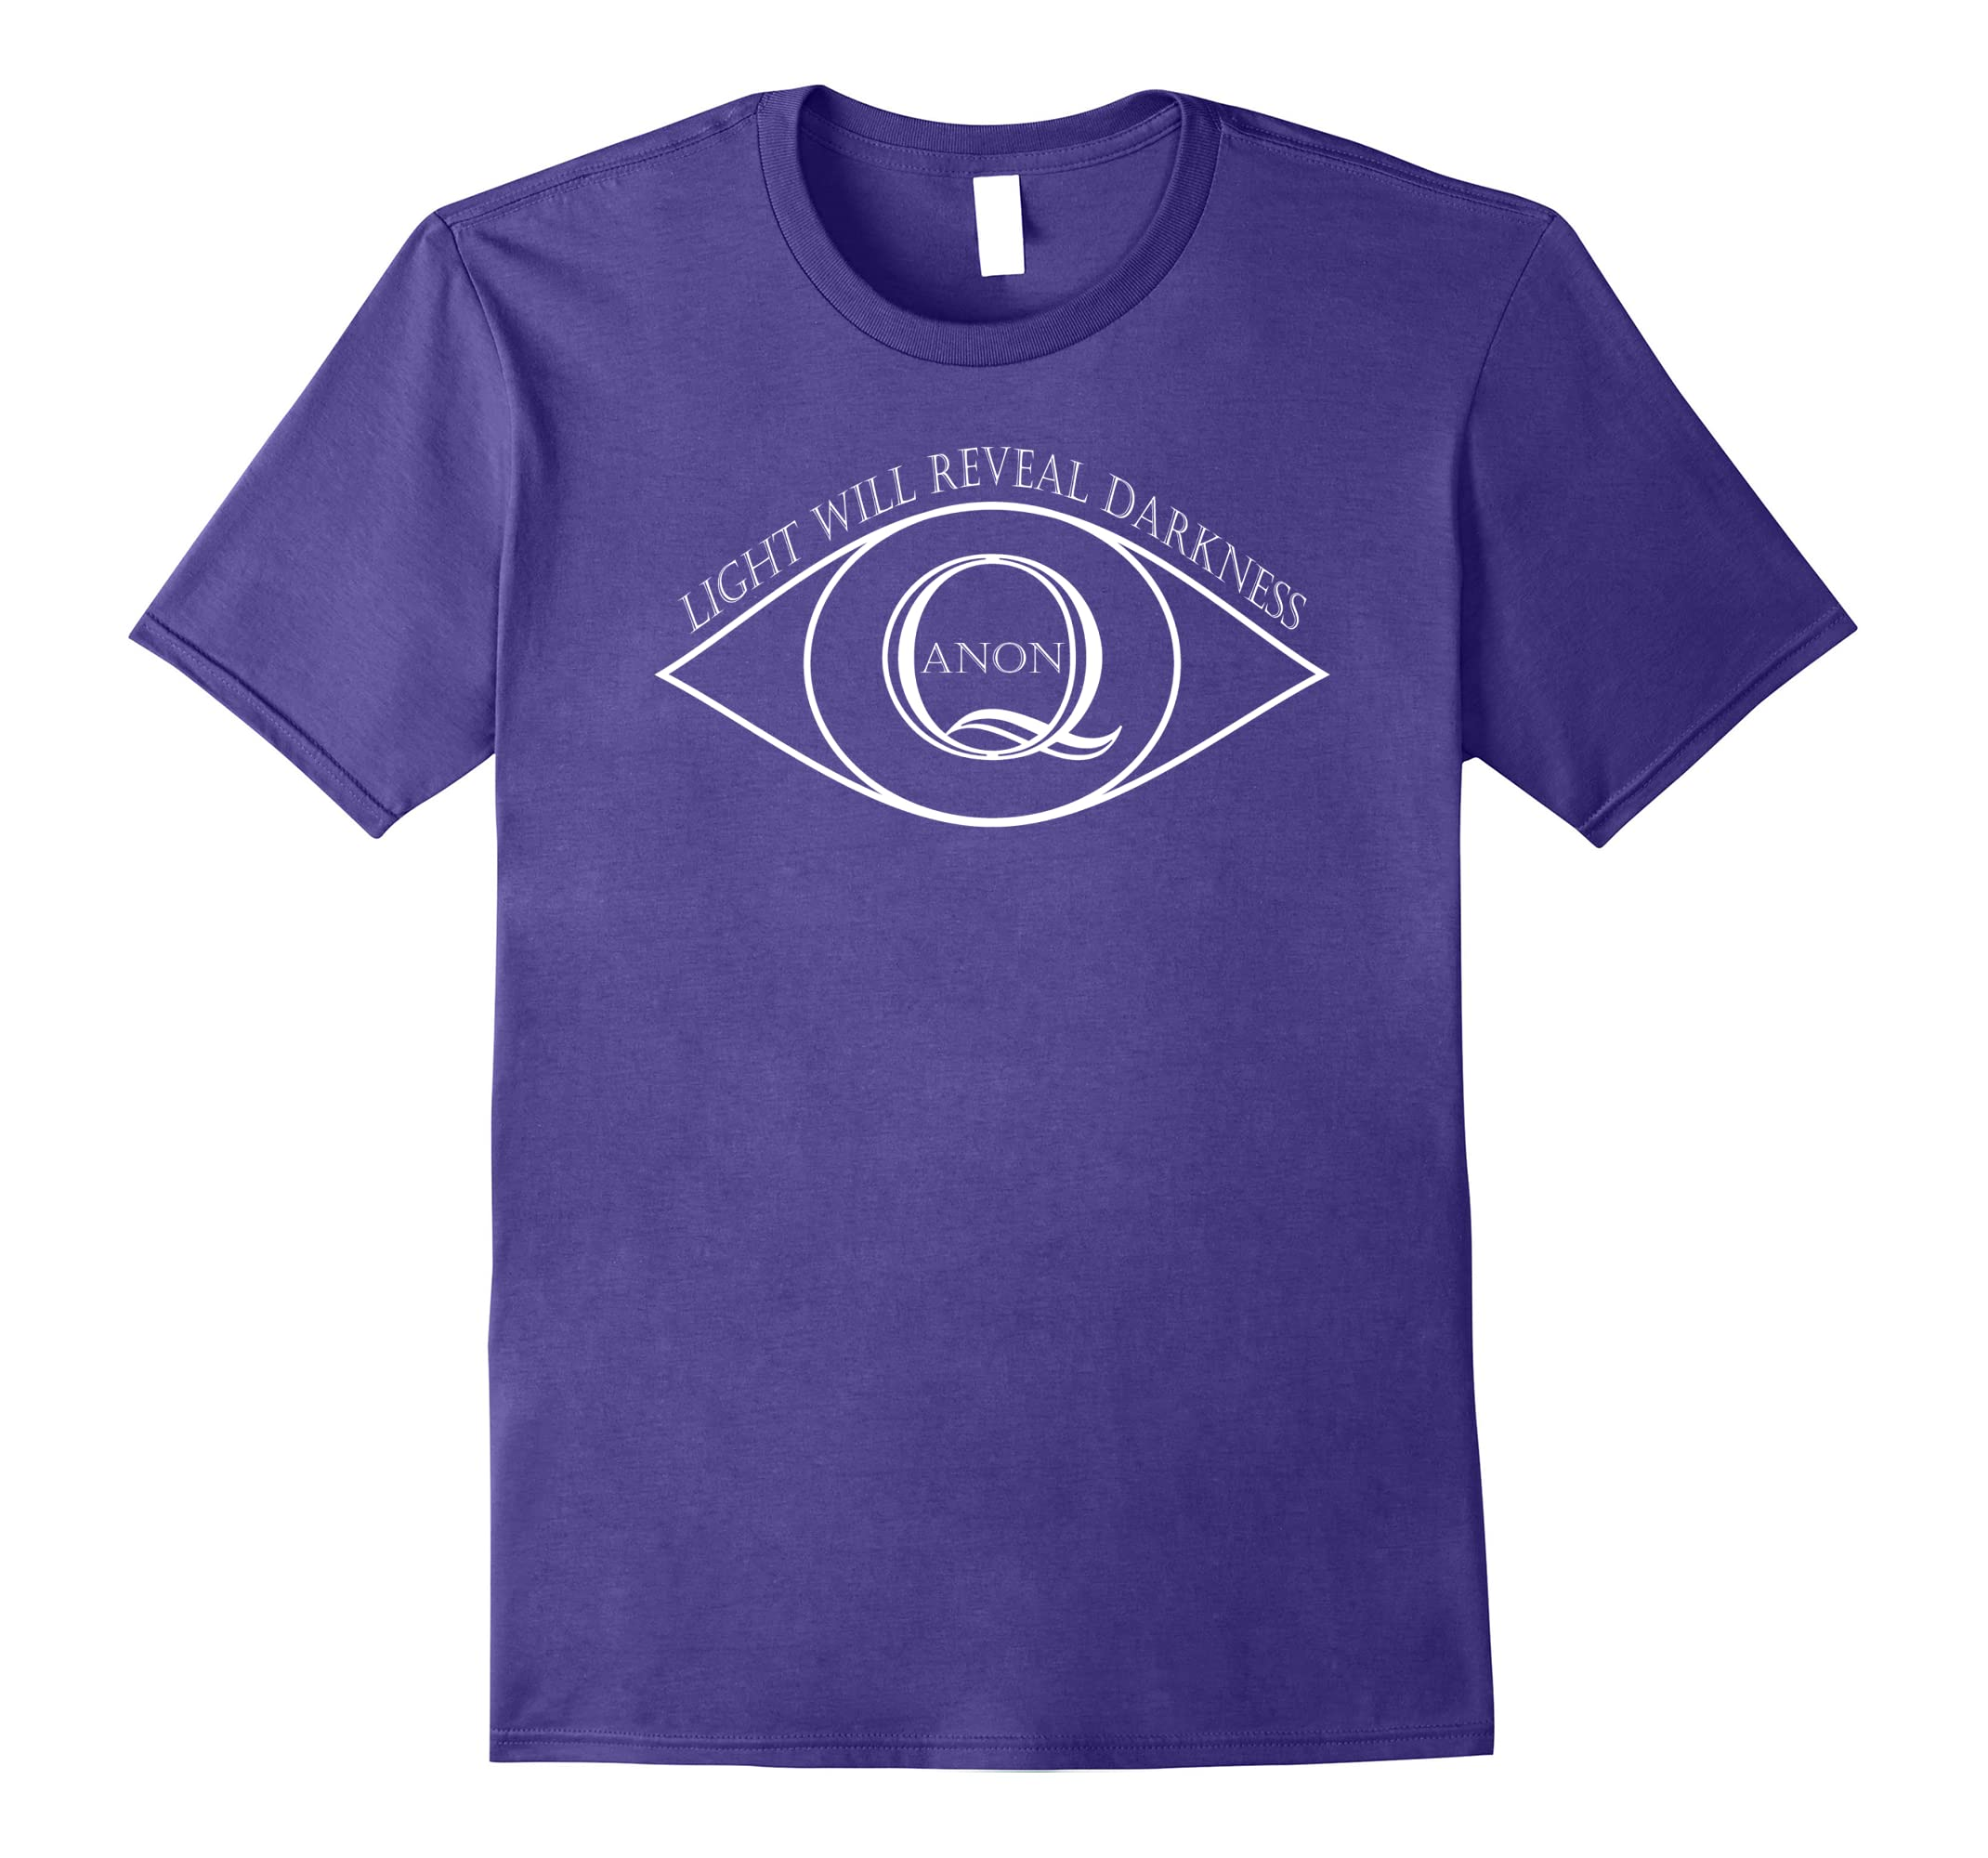 Q Anon Eyeball Light Will Reveal Darkness Patriotic T-shirt-RT